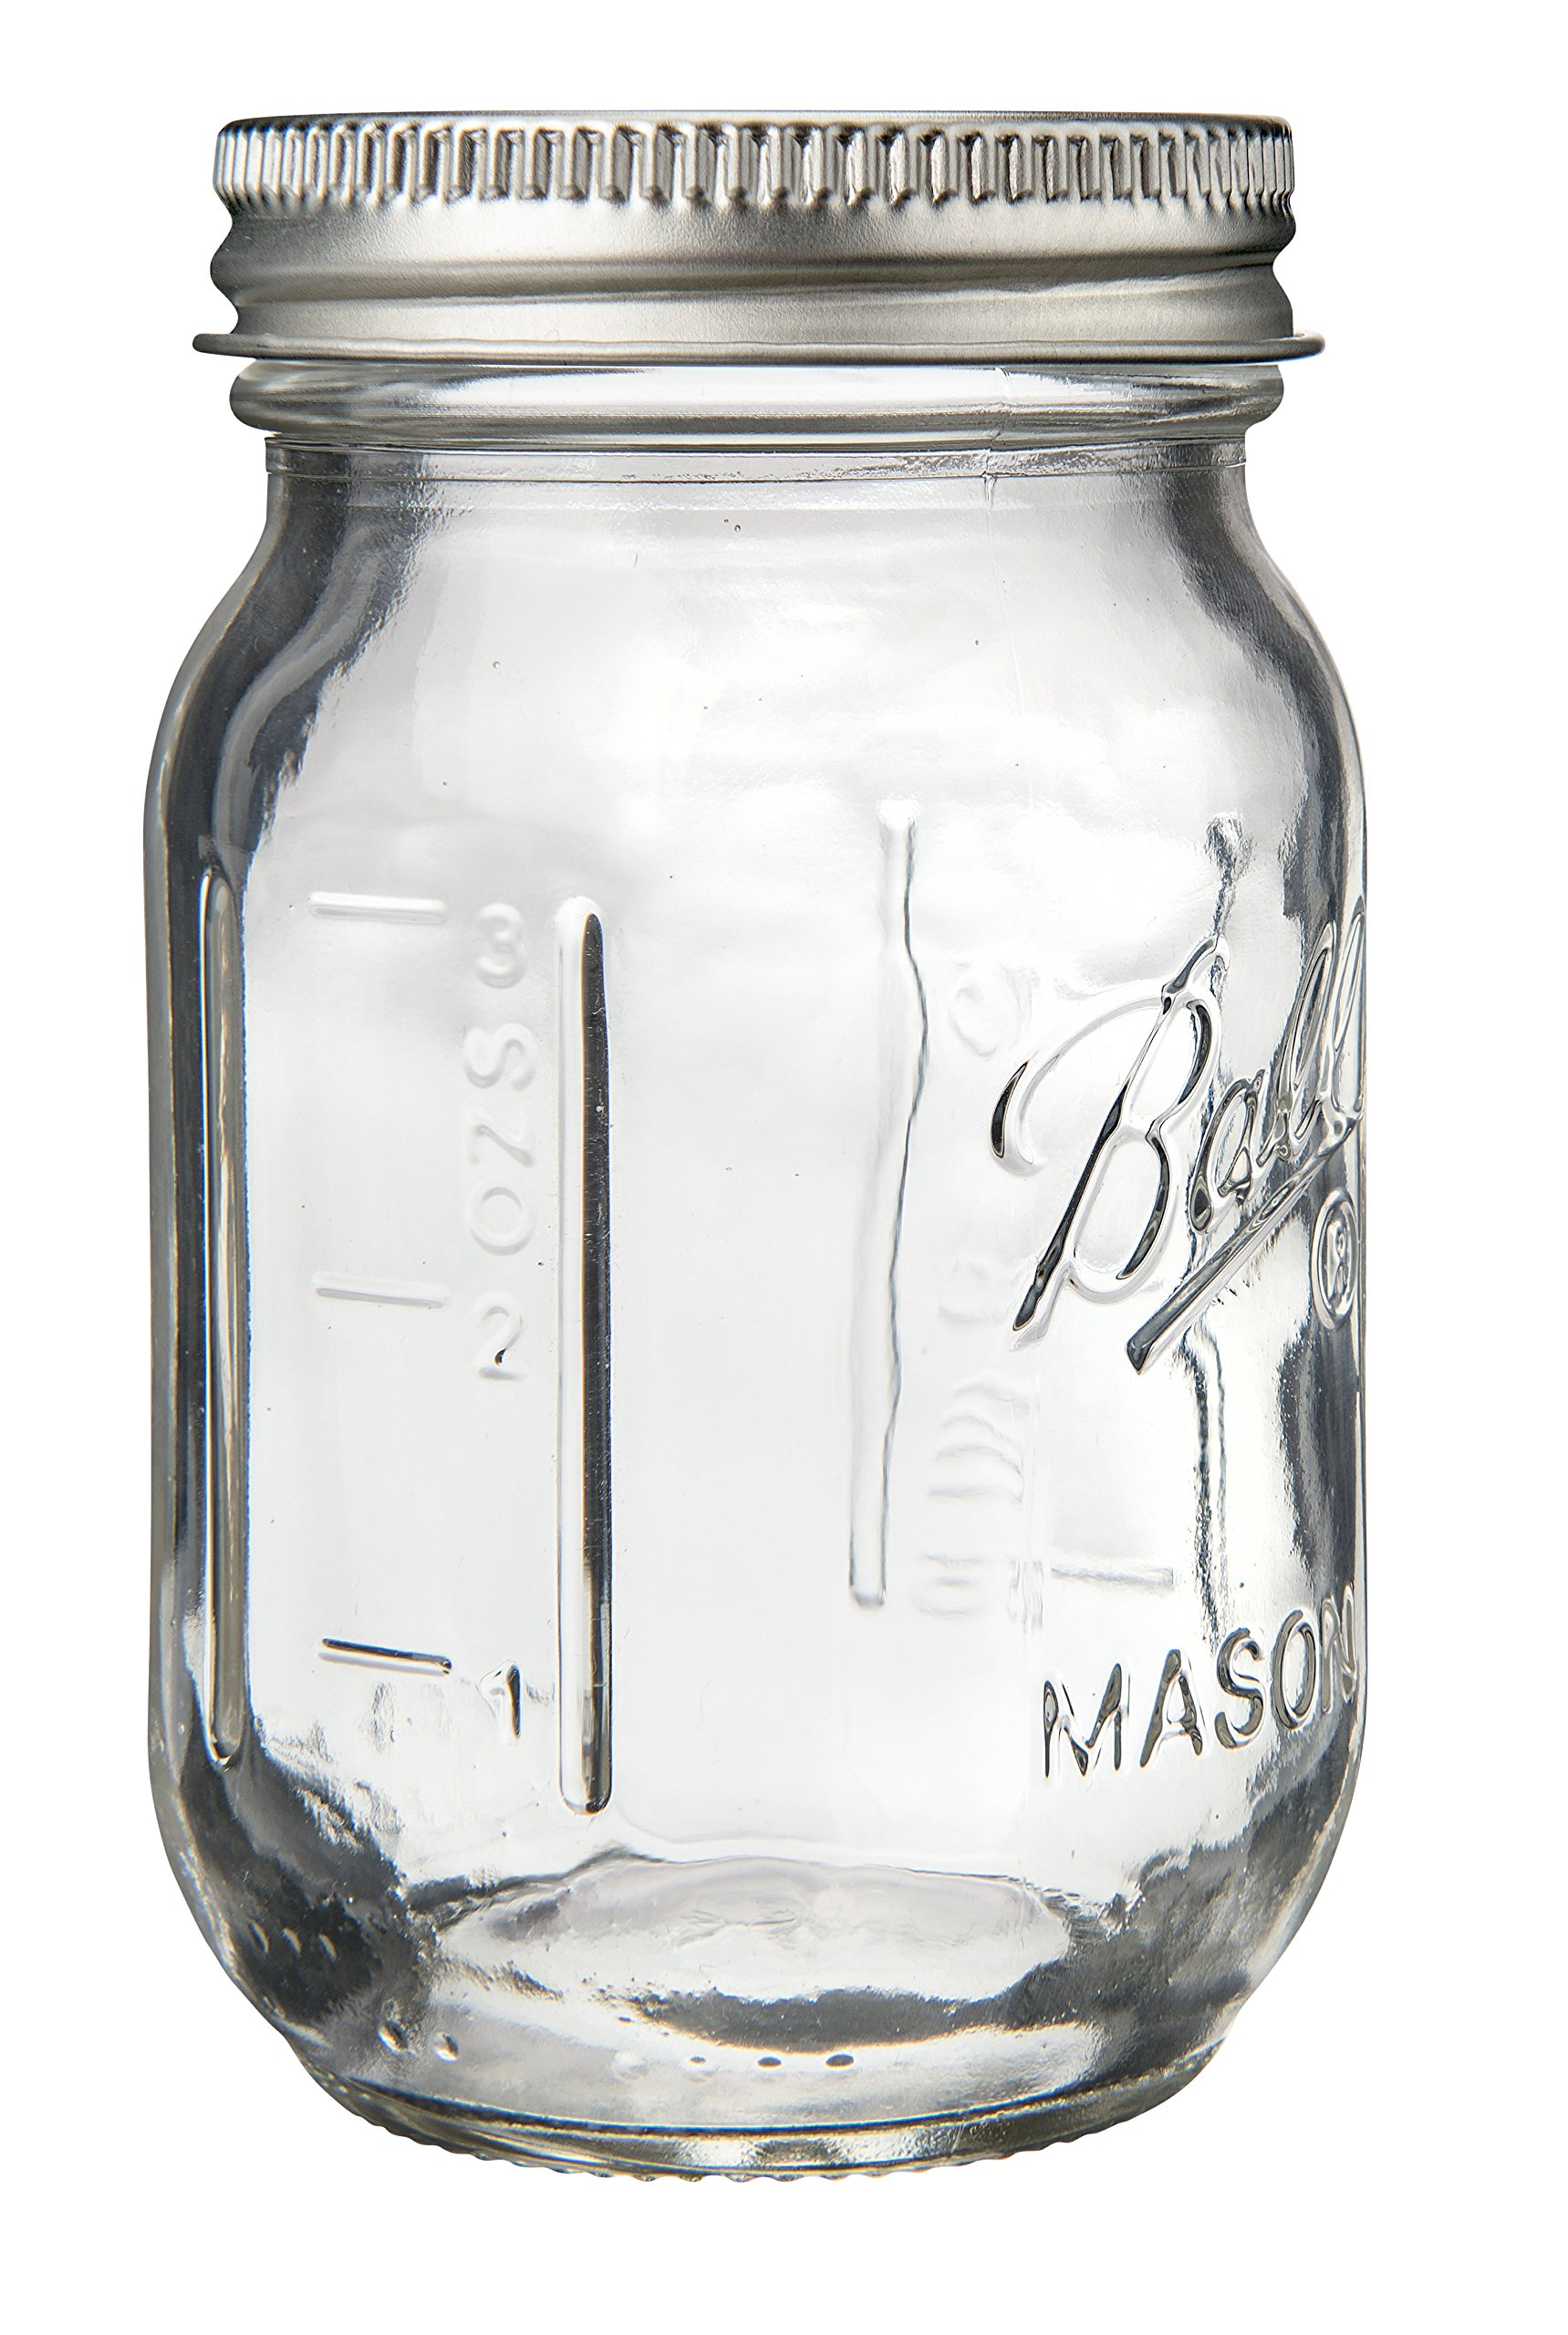 Get Quotations · Ball 1440080100 Miniature Storage Jar Mini Jar 4 Oz  Miniature Storage Jar, 24 Jars,